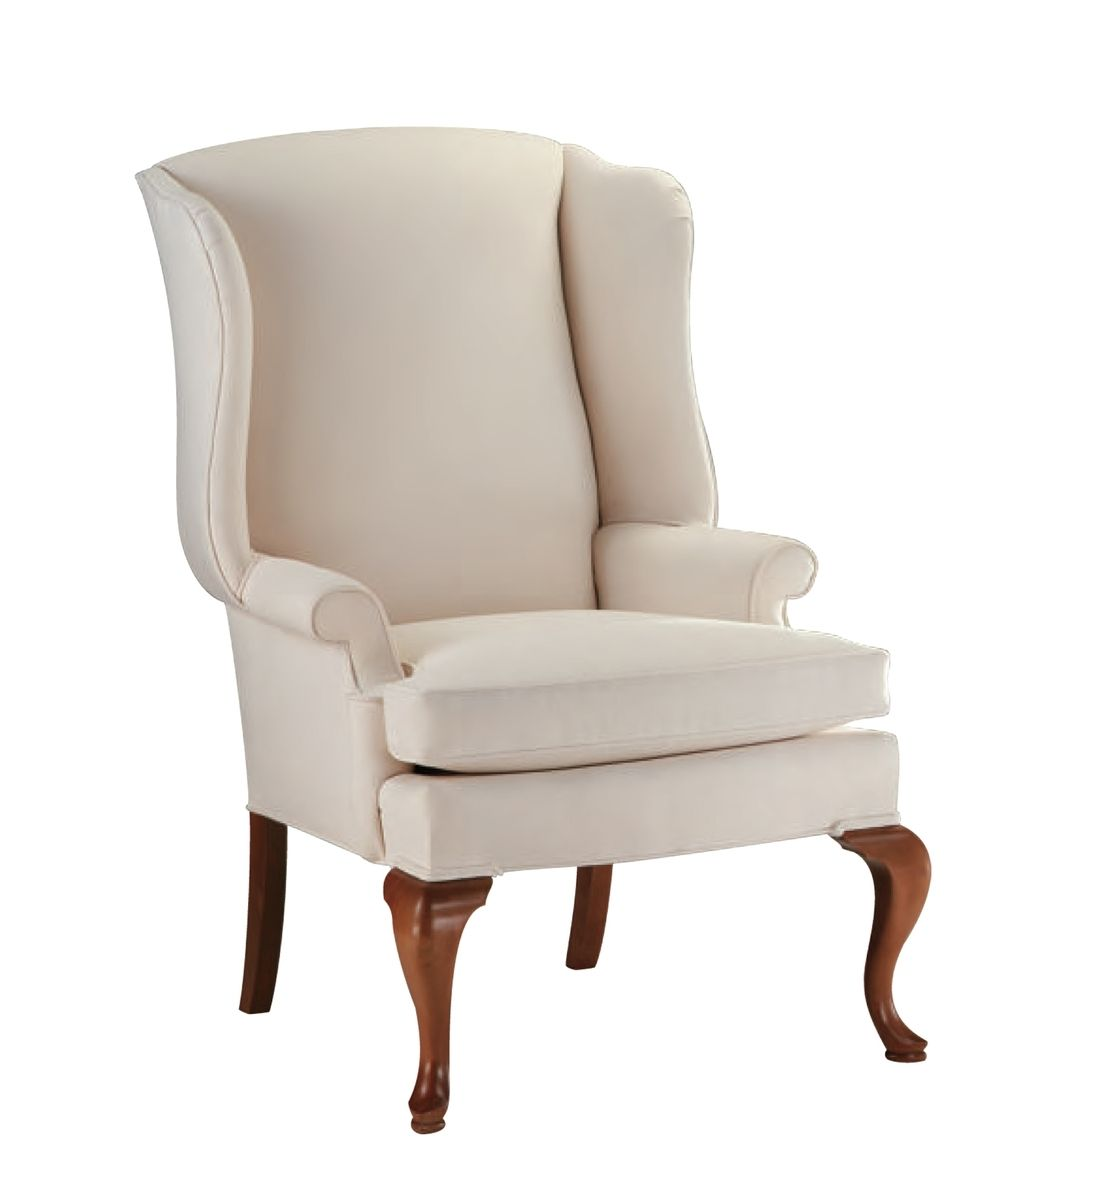 upholstered wingback chair unique baby shower chairs custom by oak and velvet